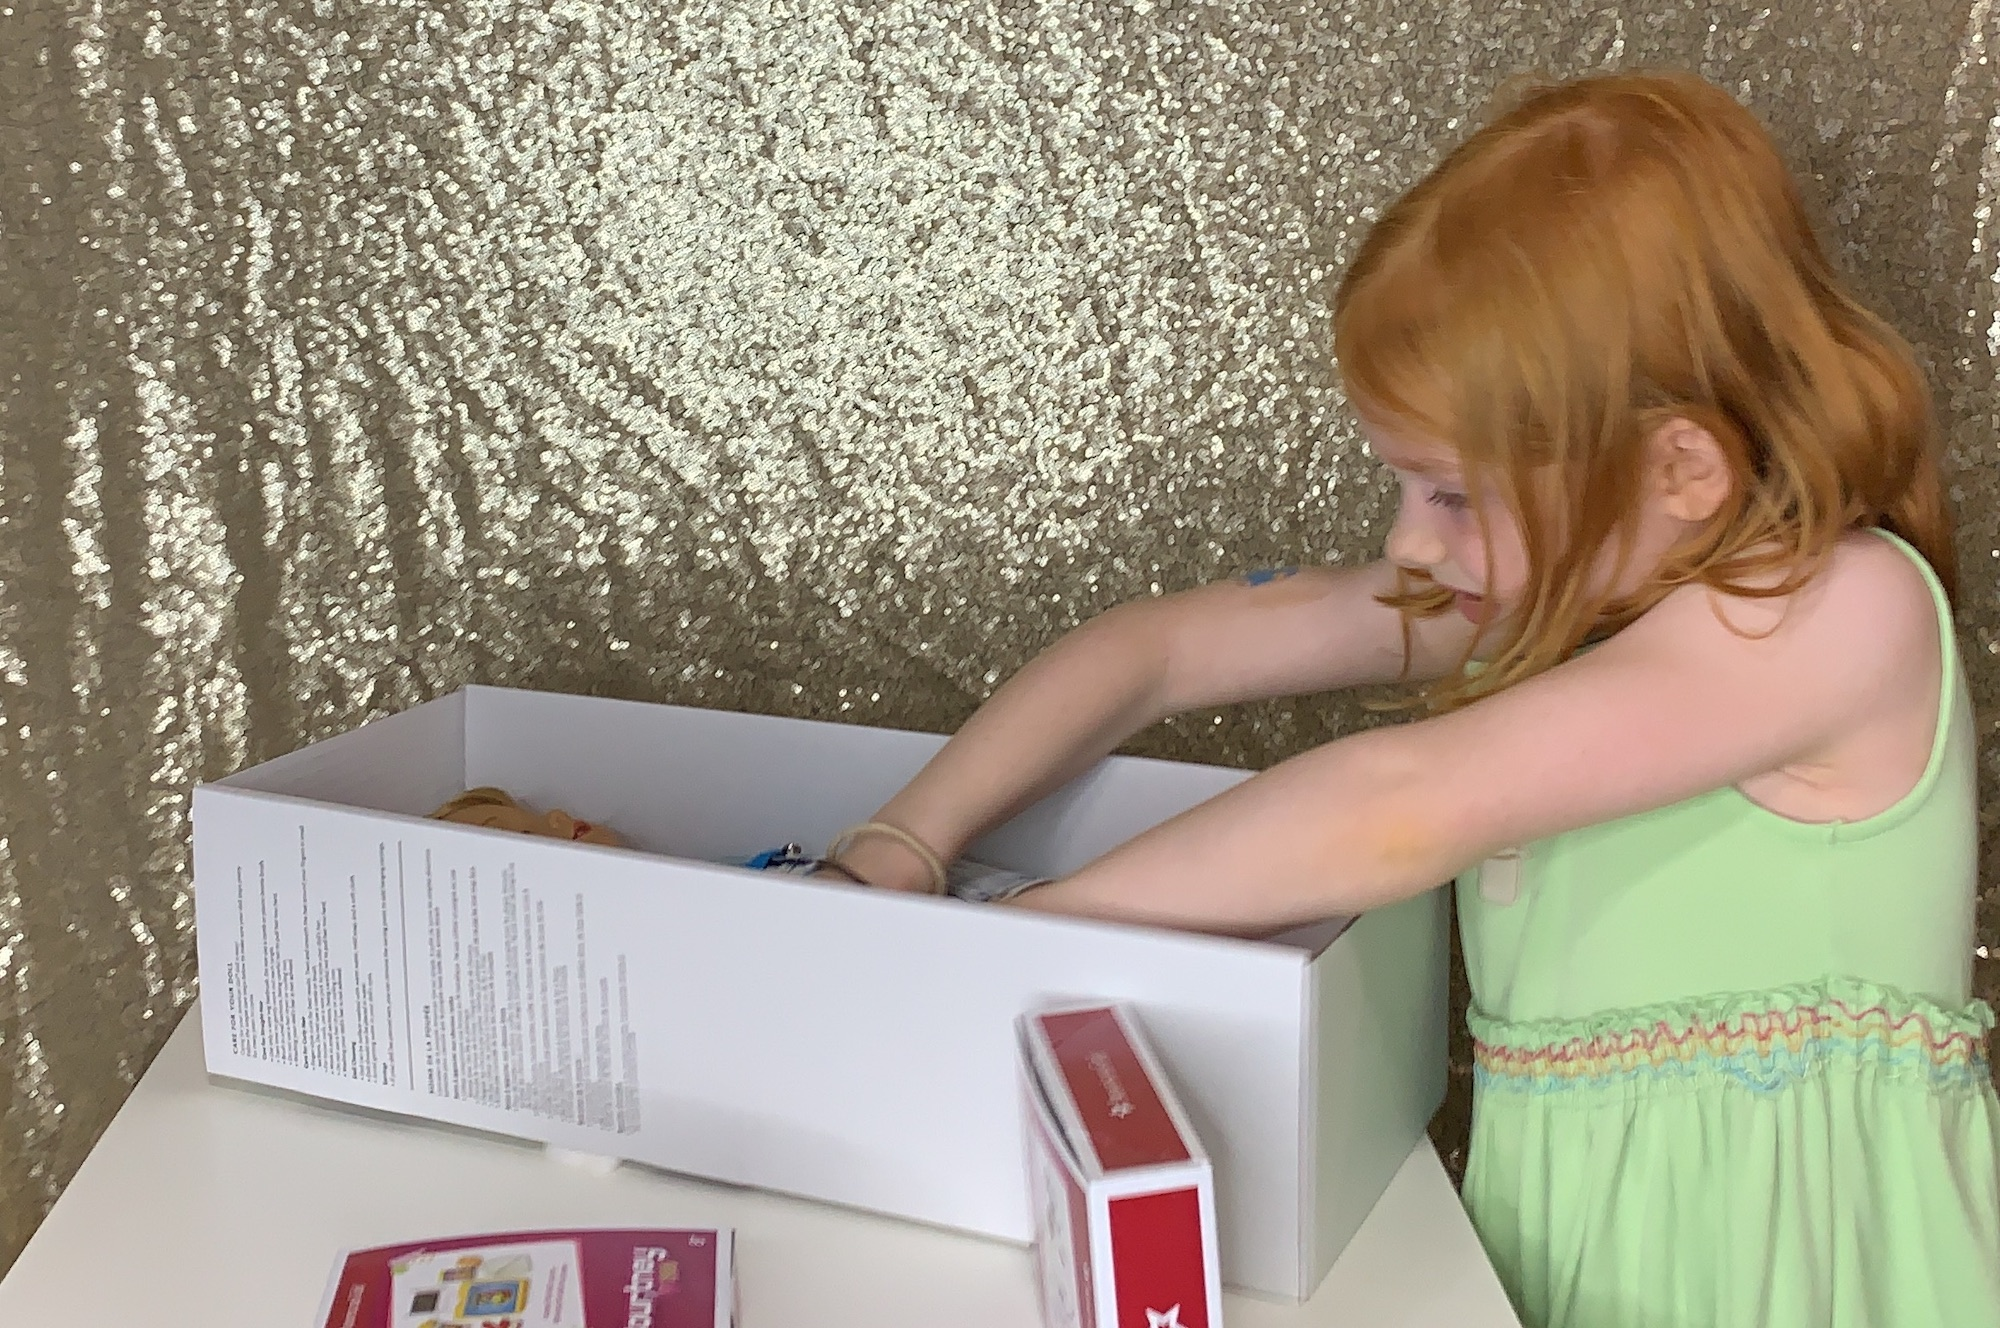 Opening american girl doll courtney